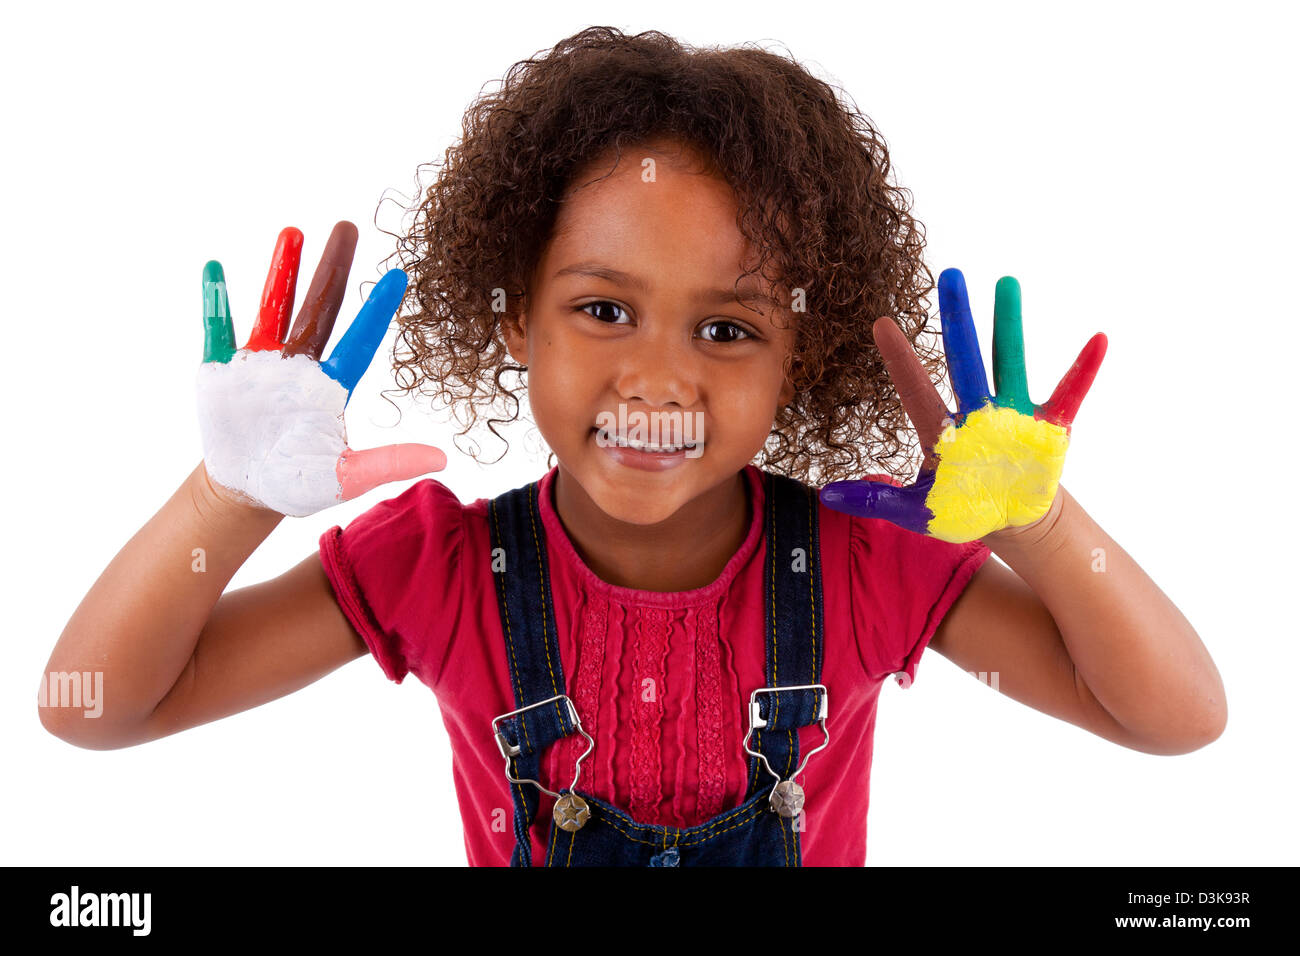 Little African Asian girl with hands painted in colorful paints - Stock Image